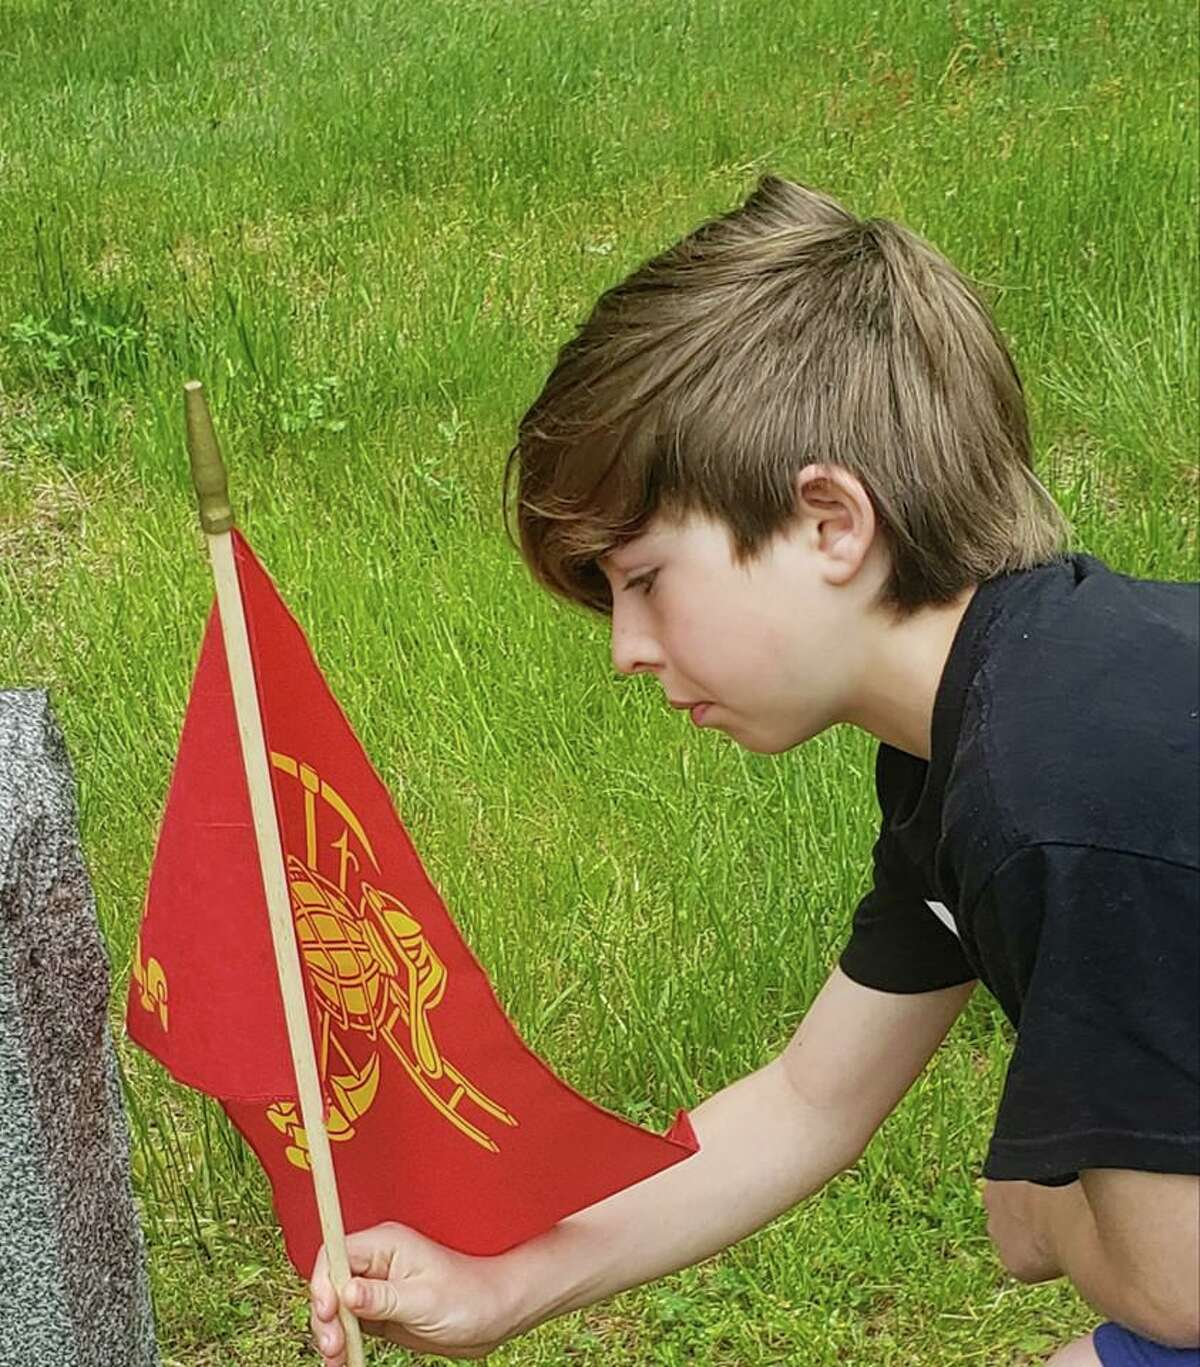 Quinn Carlson Parker, 10, and his family visited Northville Cemetery, where they placed flags at grave sites.